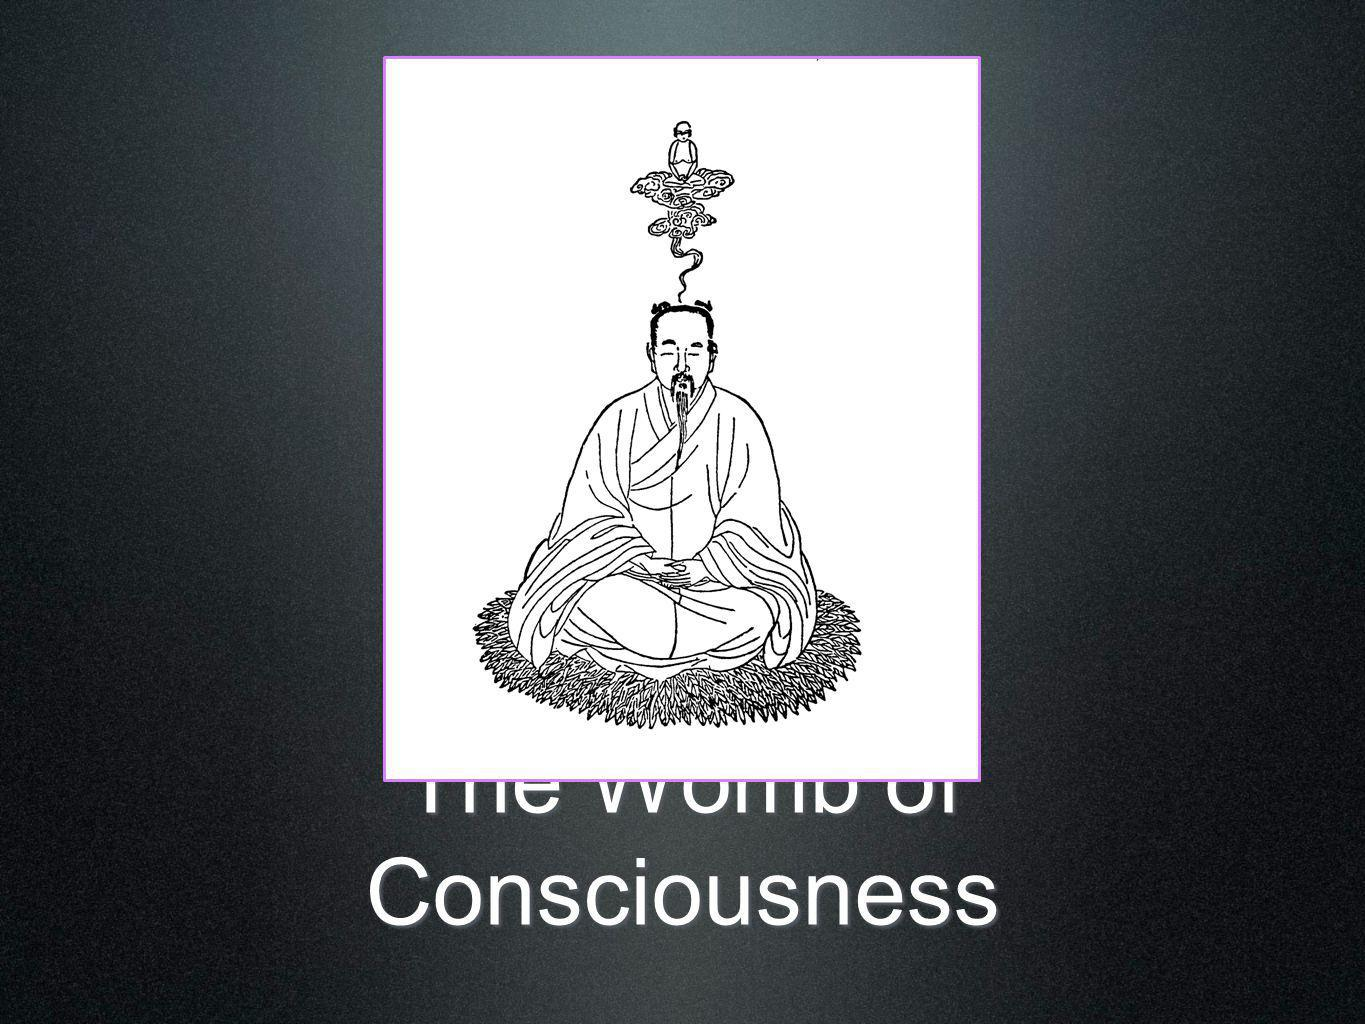 The Womb of Consciousness